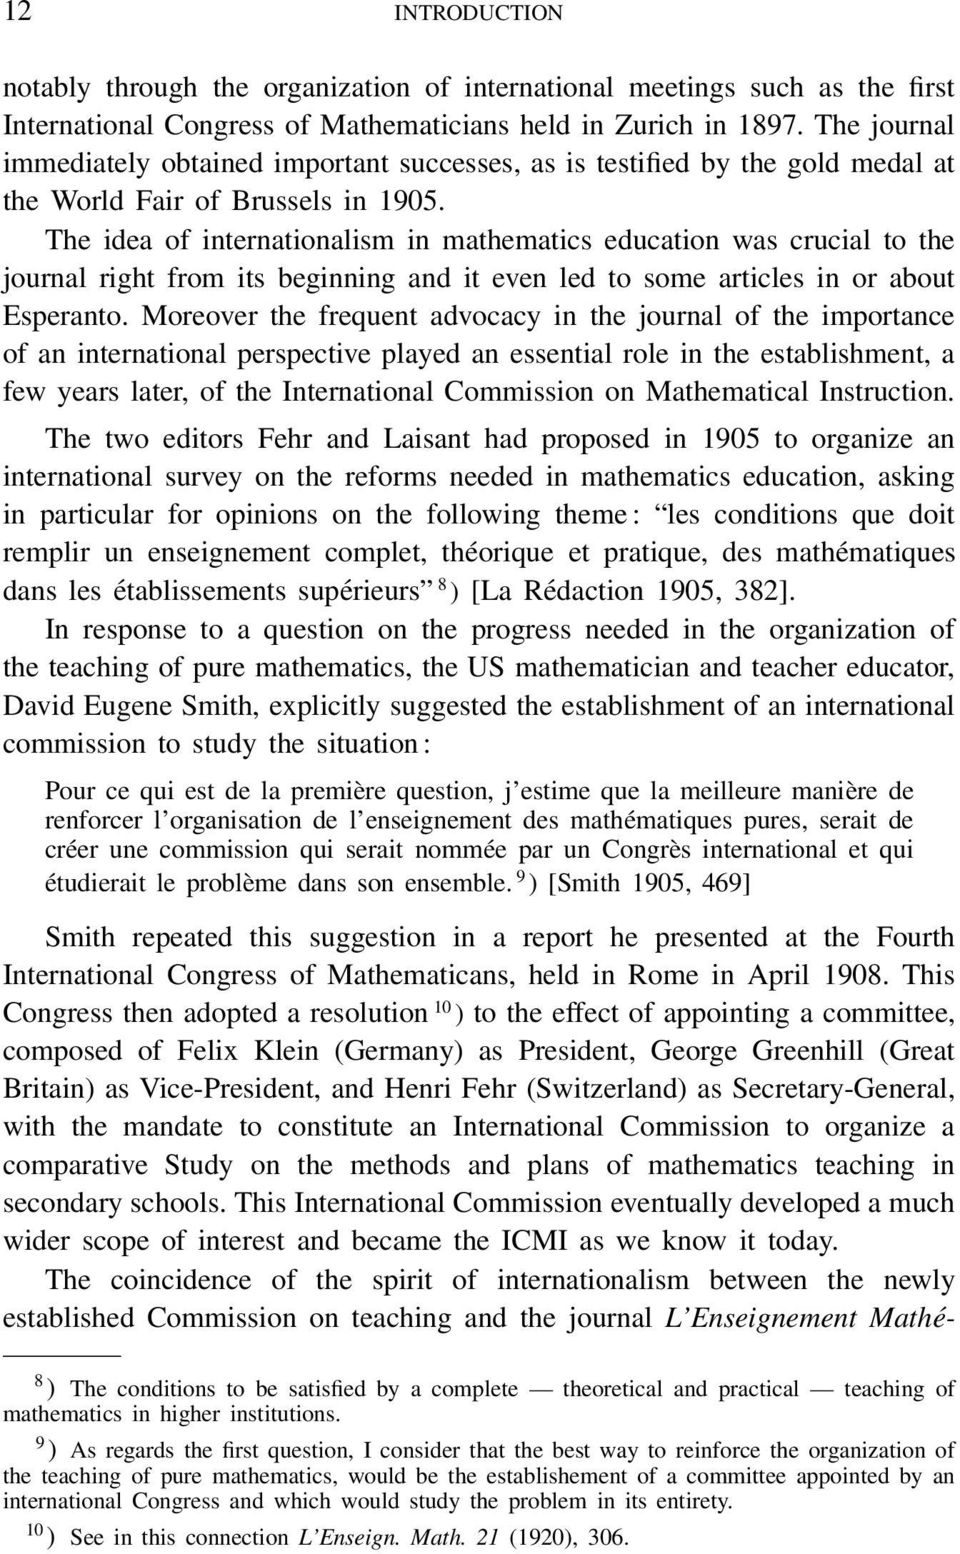 The idea of internationalism in mathematics education was crucial to the journal right from its beginning and it even led to some articles in or about Esperanto.